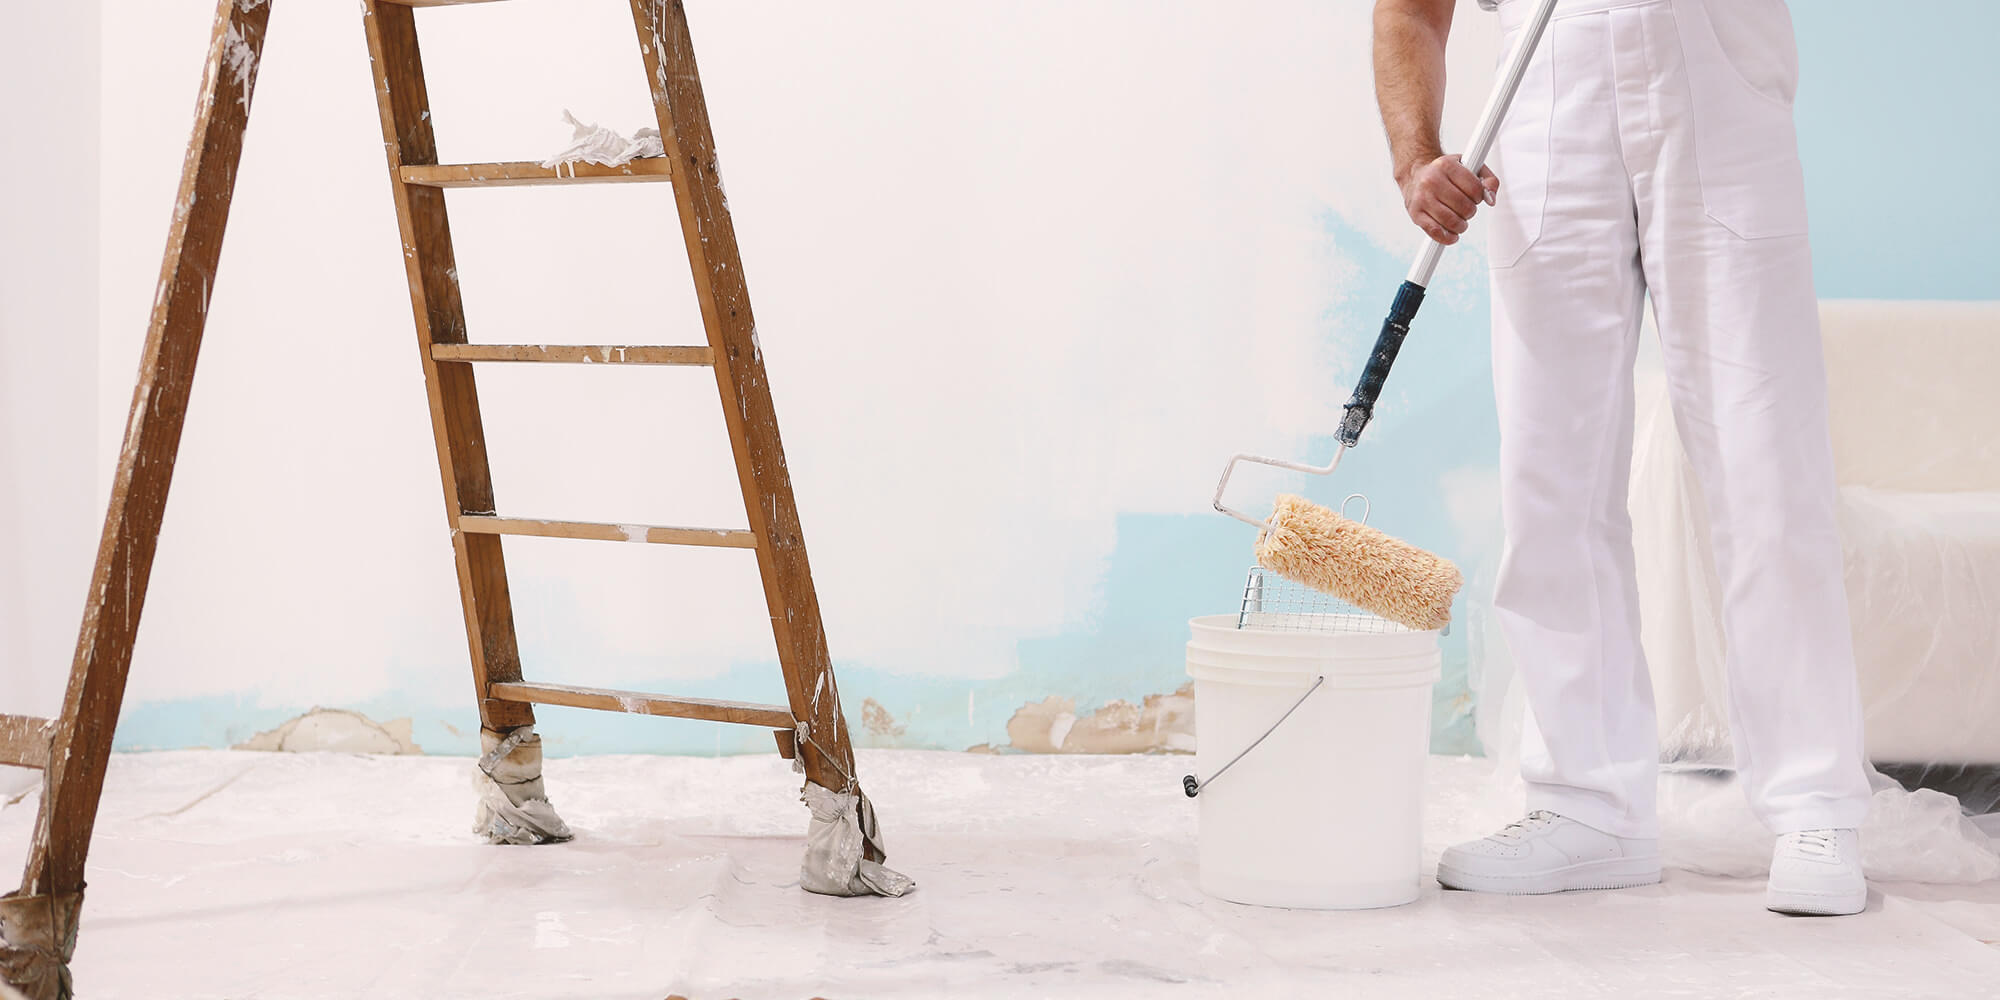 Applying paint to the walls is not easy. It requires a lot of skills. Only experts should perform this task. For others, it could be mission impossible.